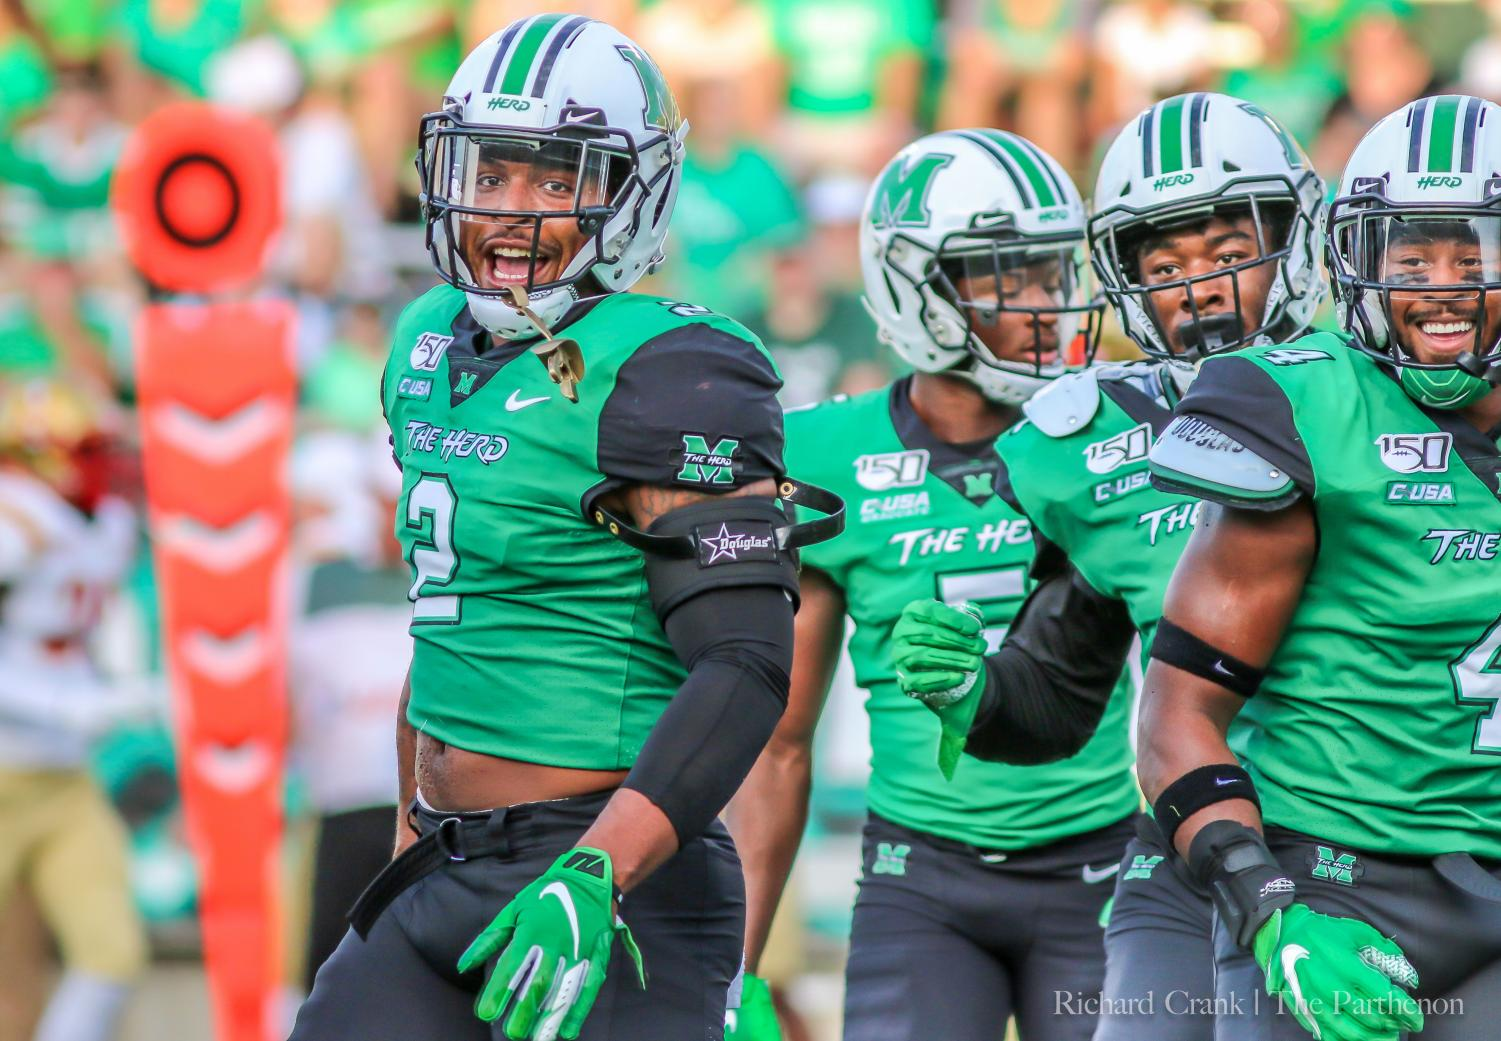 Marshall vs VMI football game - August 31st.